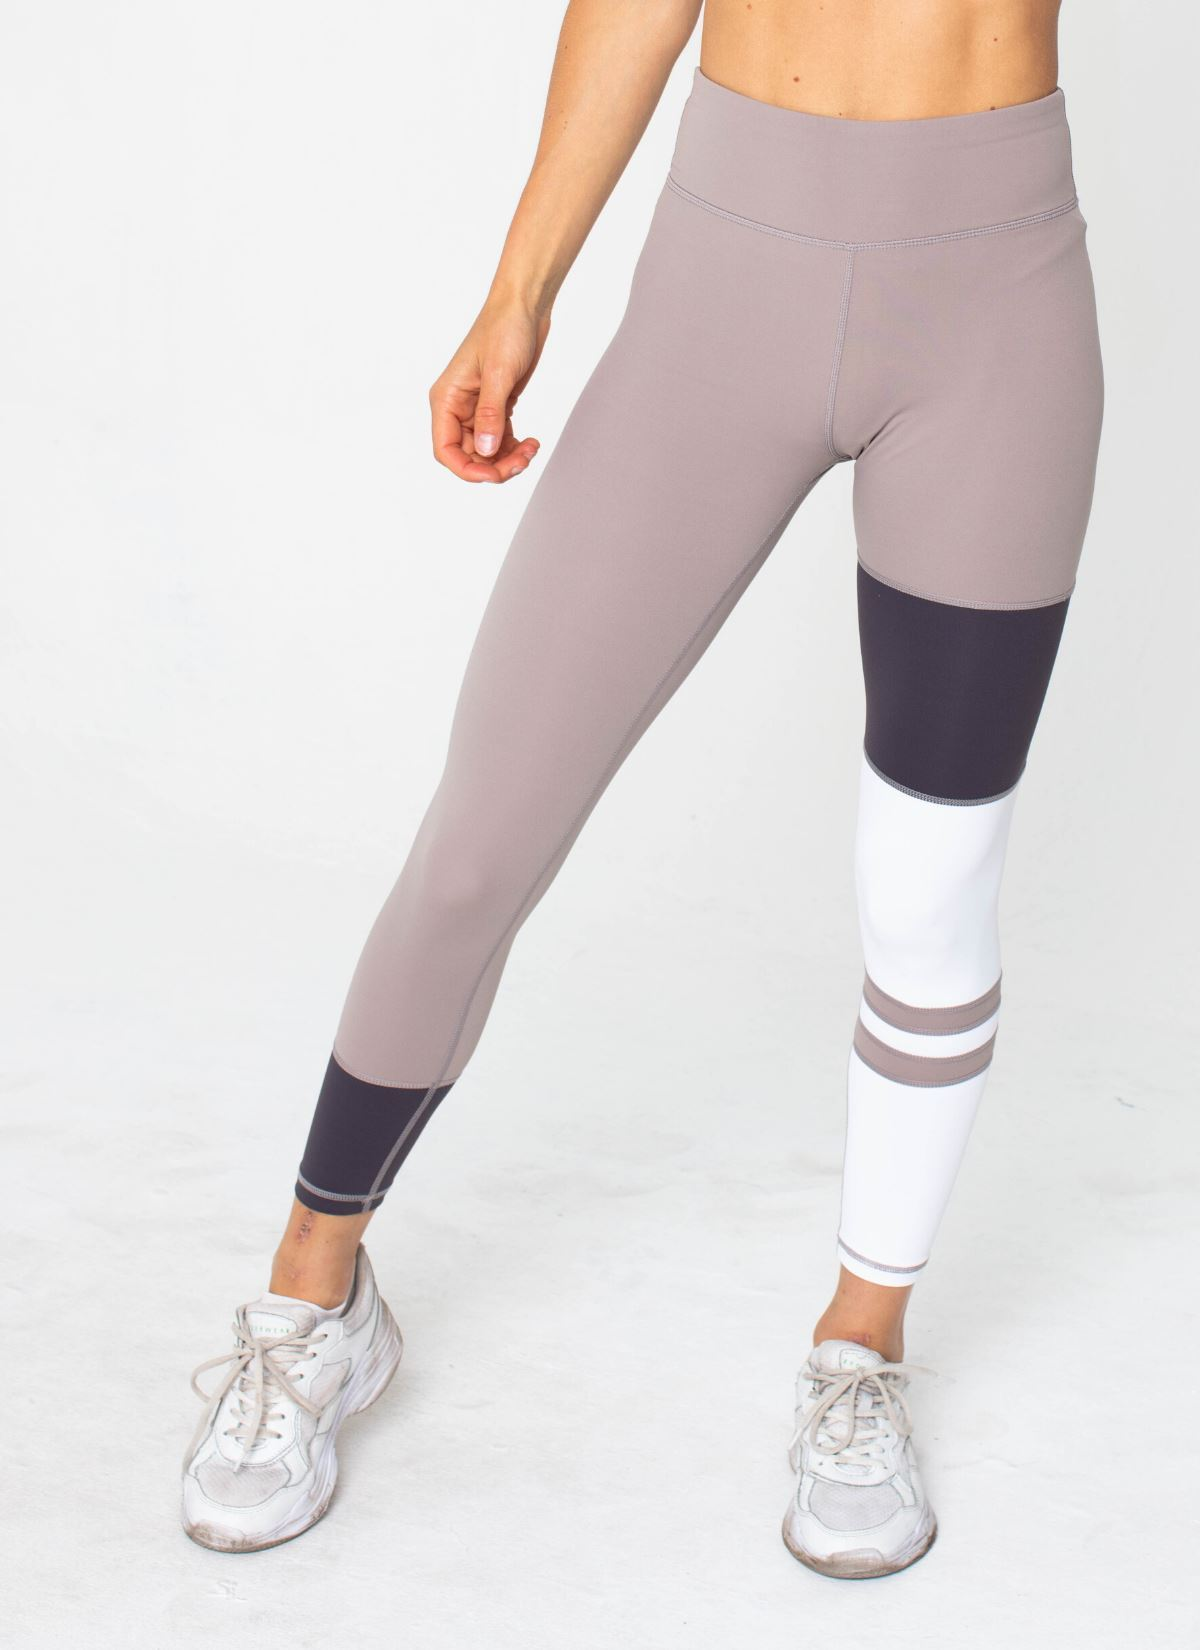 Conquer Beige Leggings - Athlete Body